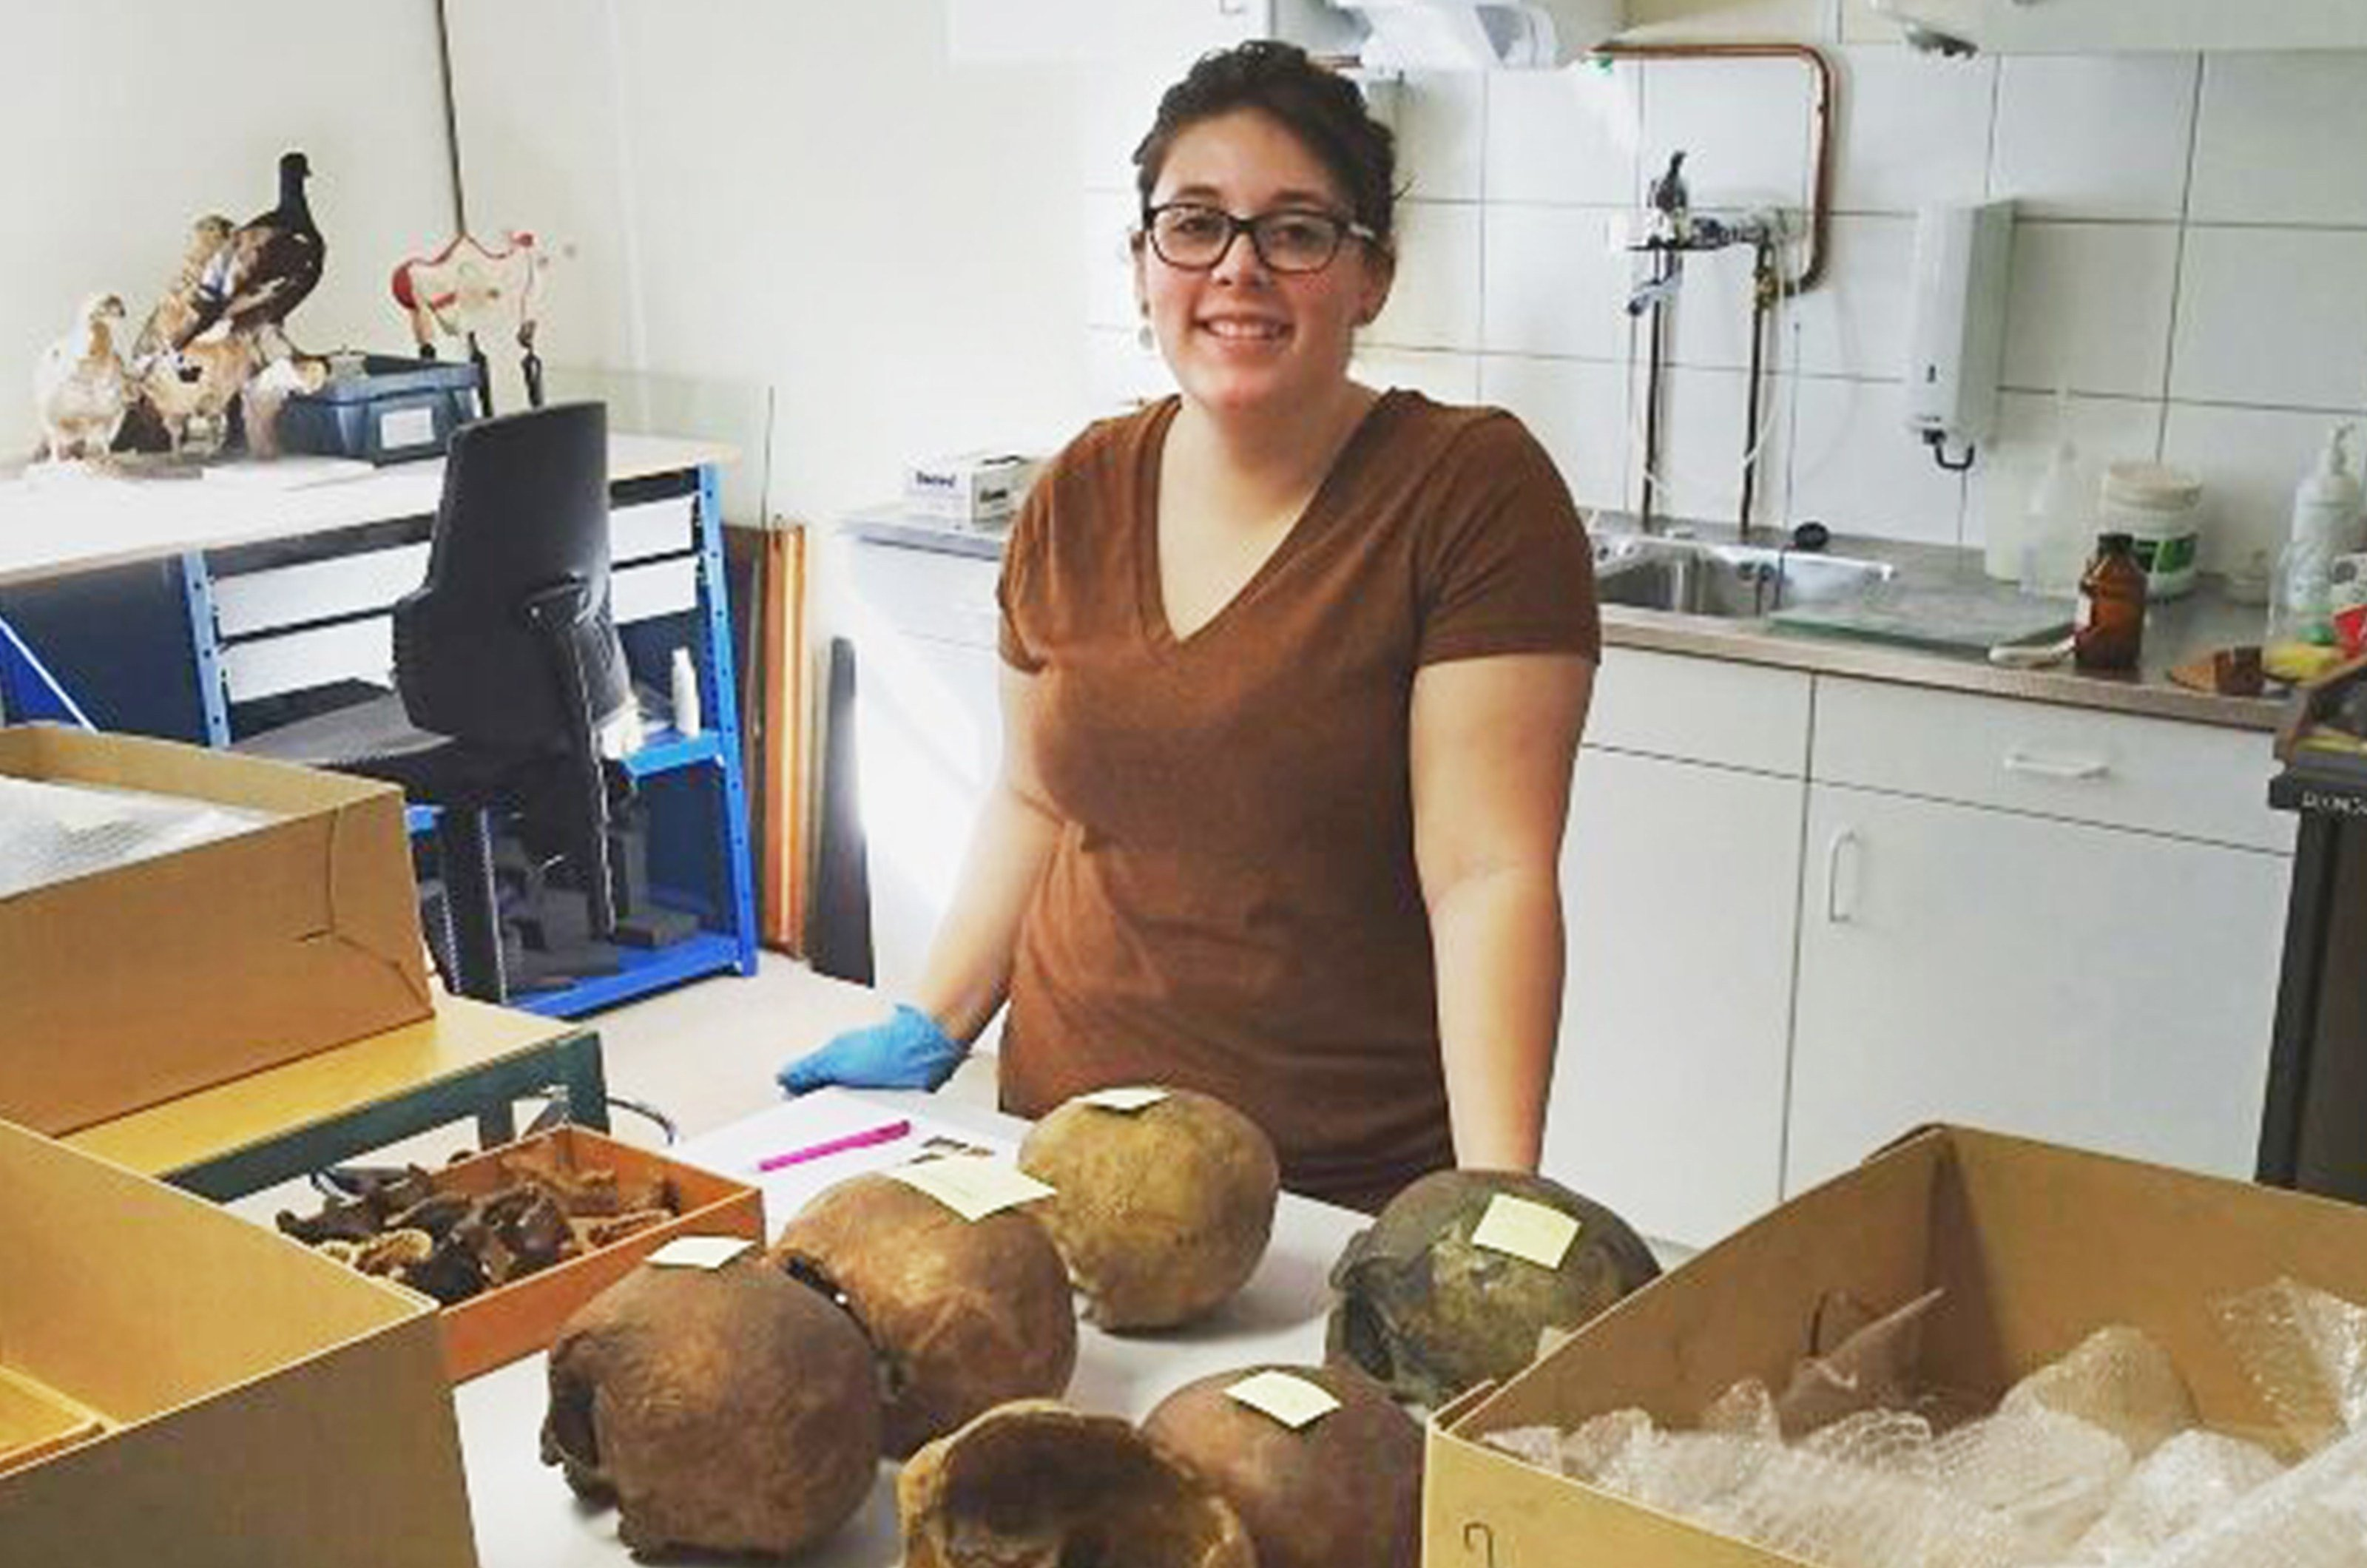 Central Michigan University senior Ashley Blackburn processes skulls as part of her self-created internship at the University of Groningen's museum in The Netherlands. (Source: CMU)